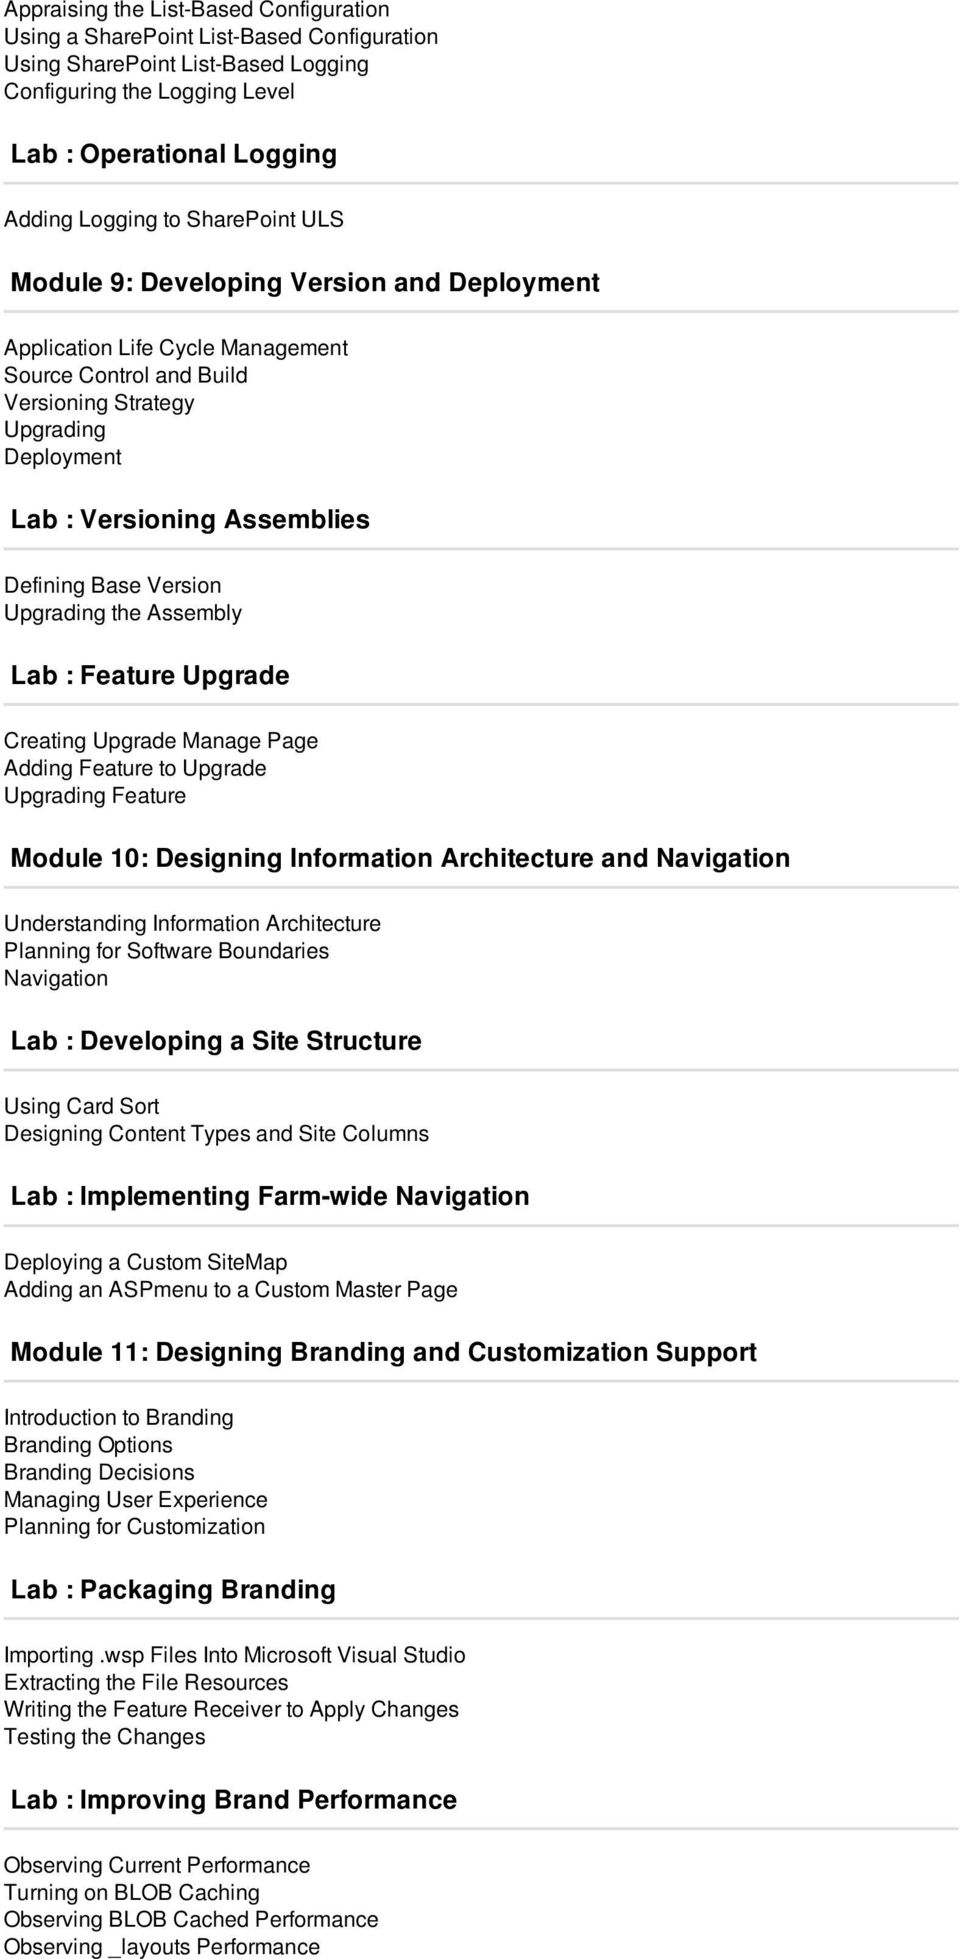 Base Version Upgrading the Assembly Lab : Feature Upgrade Creating Upgrade Manage Page Adding Feature to Upgrade Upgrading Feature Module 10: Designing Information Architecture and Navigation